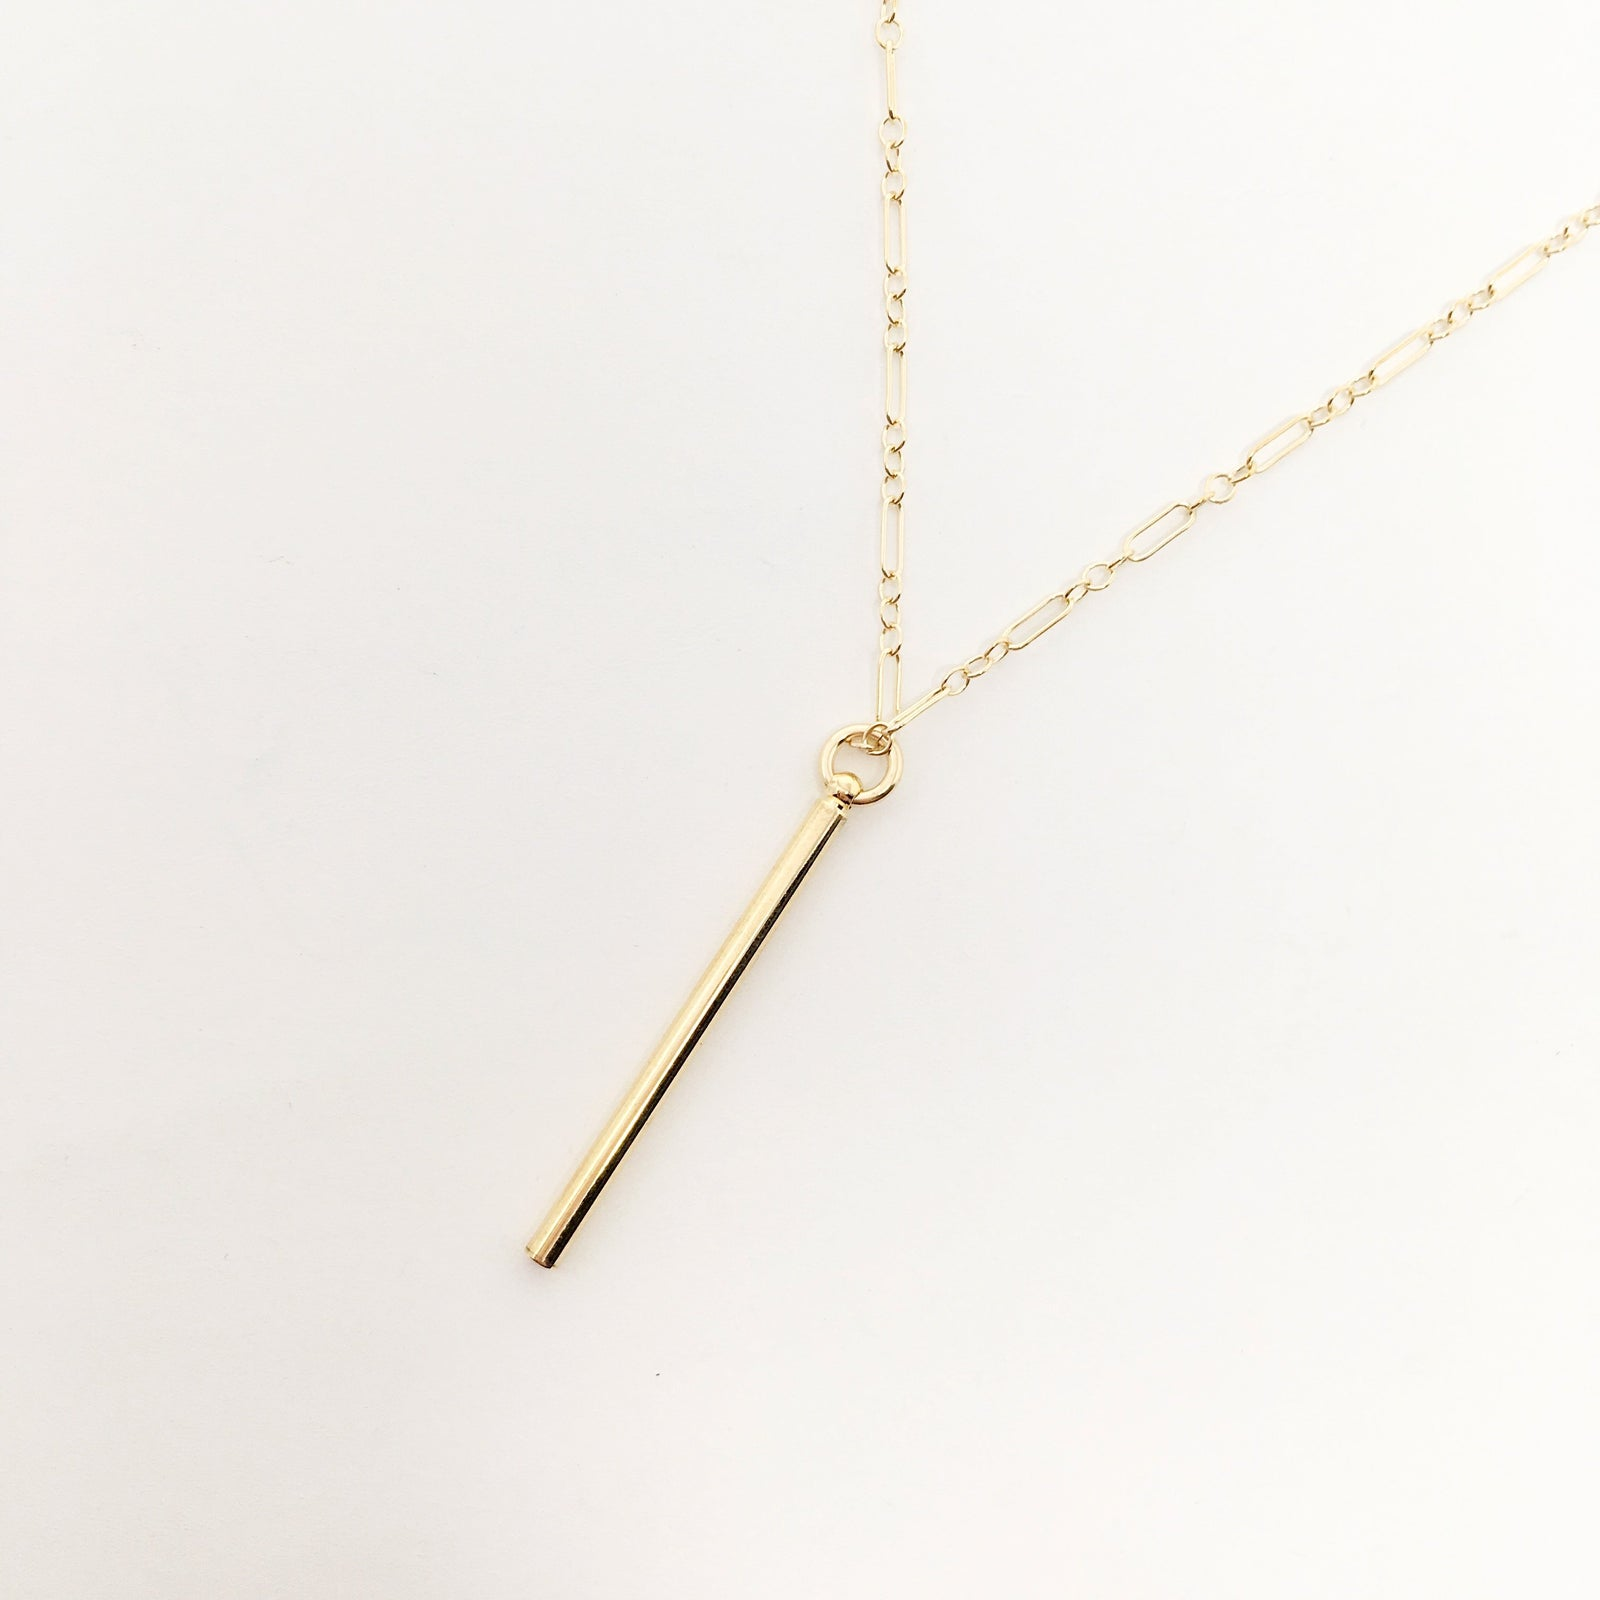 14K GOLD-FILLED DAINTY LONG BAR NECKLACE